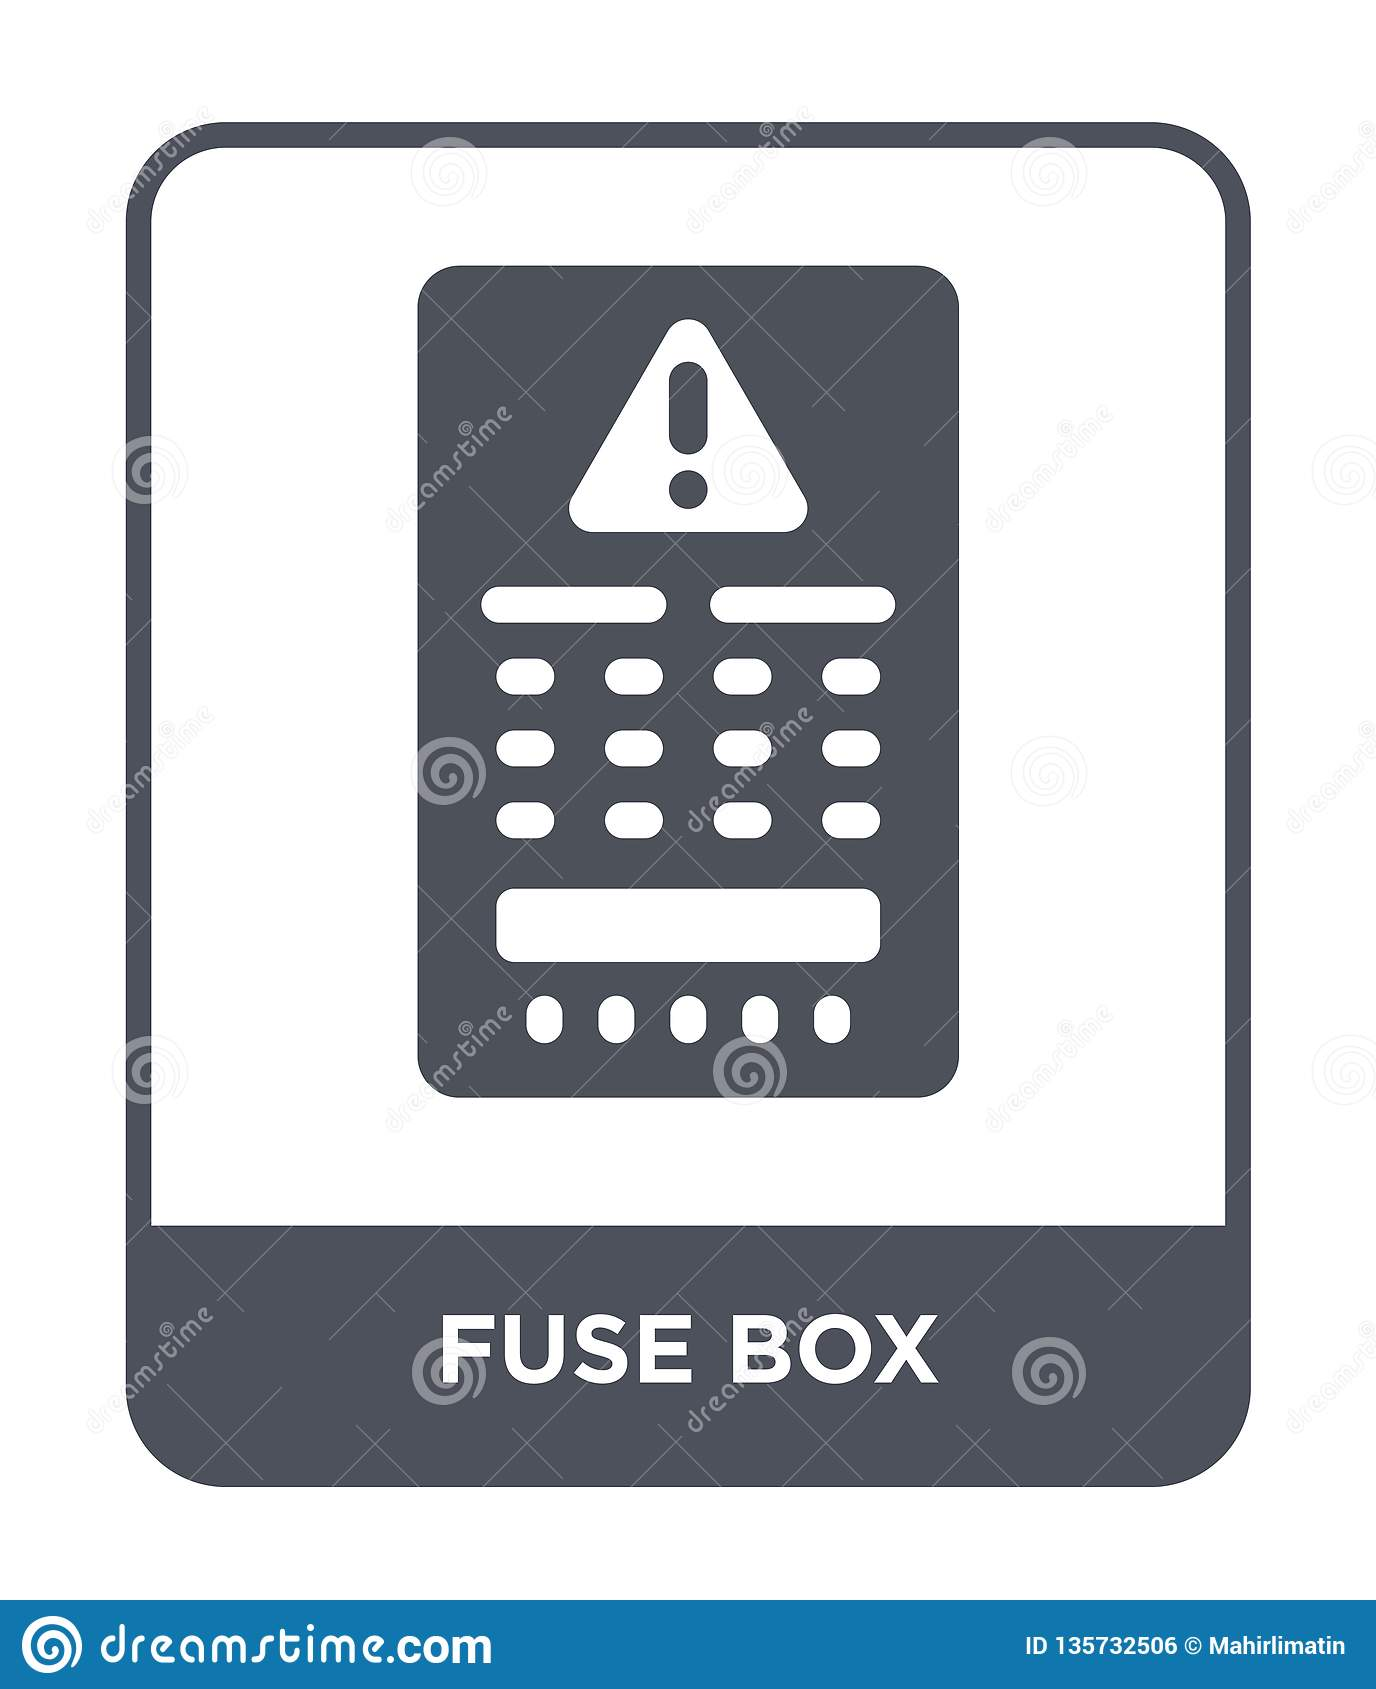 hight resolution of fuse box sign wiring diagram fuse box icon in trendy design style fuse box icon isolated